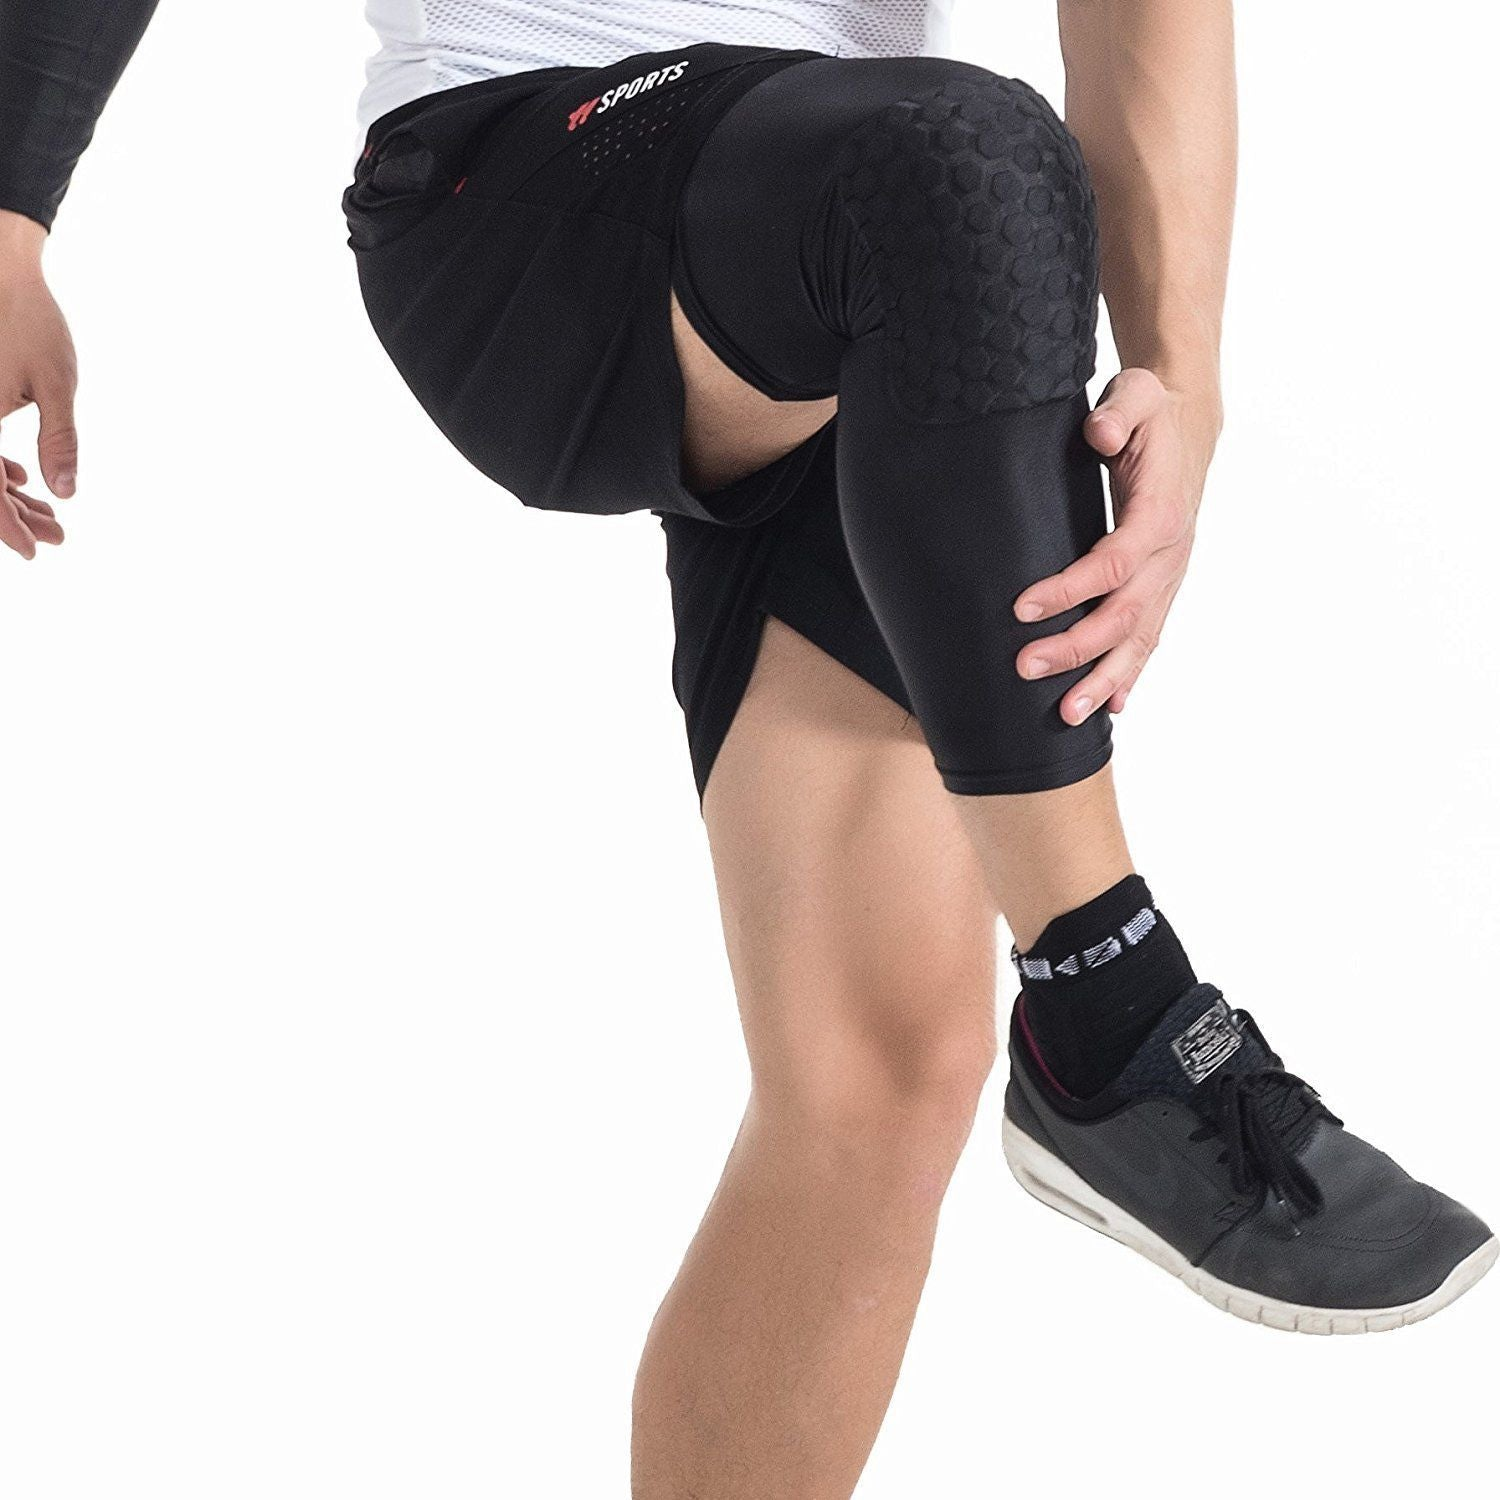 Padded Compression Knee Sleeves Sport Safety Breathable Protector Basketball